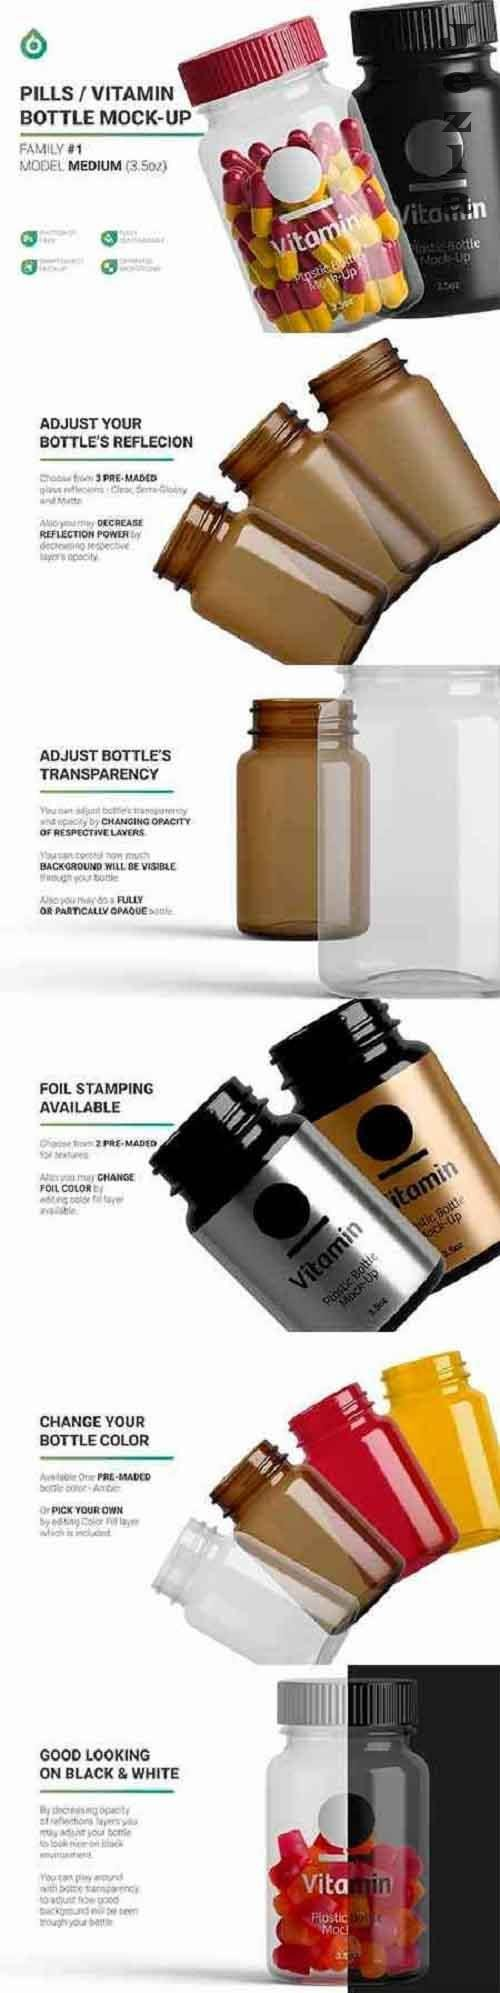 CreativeMarket - Vitamins Bottle Mockup 5268107